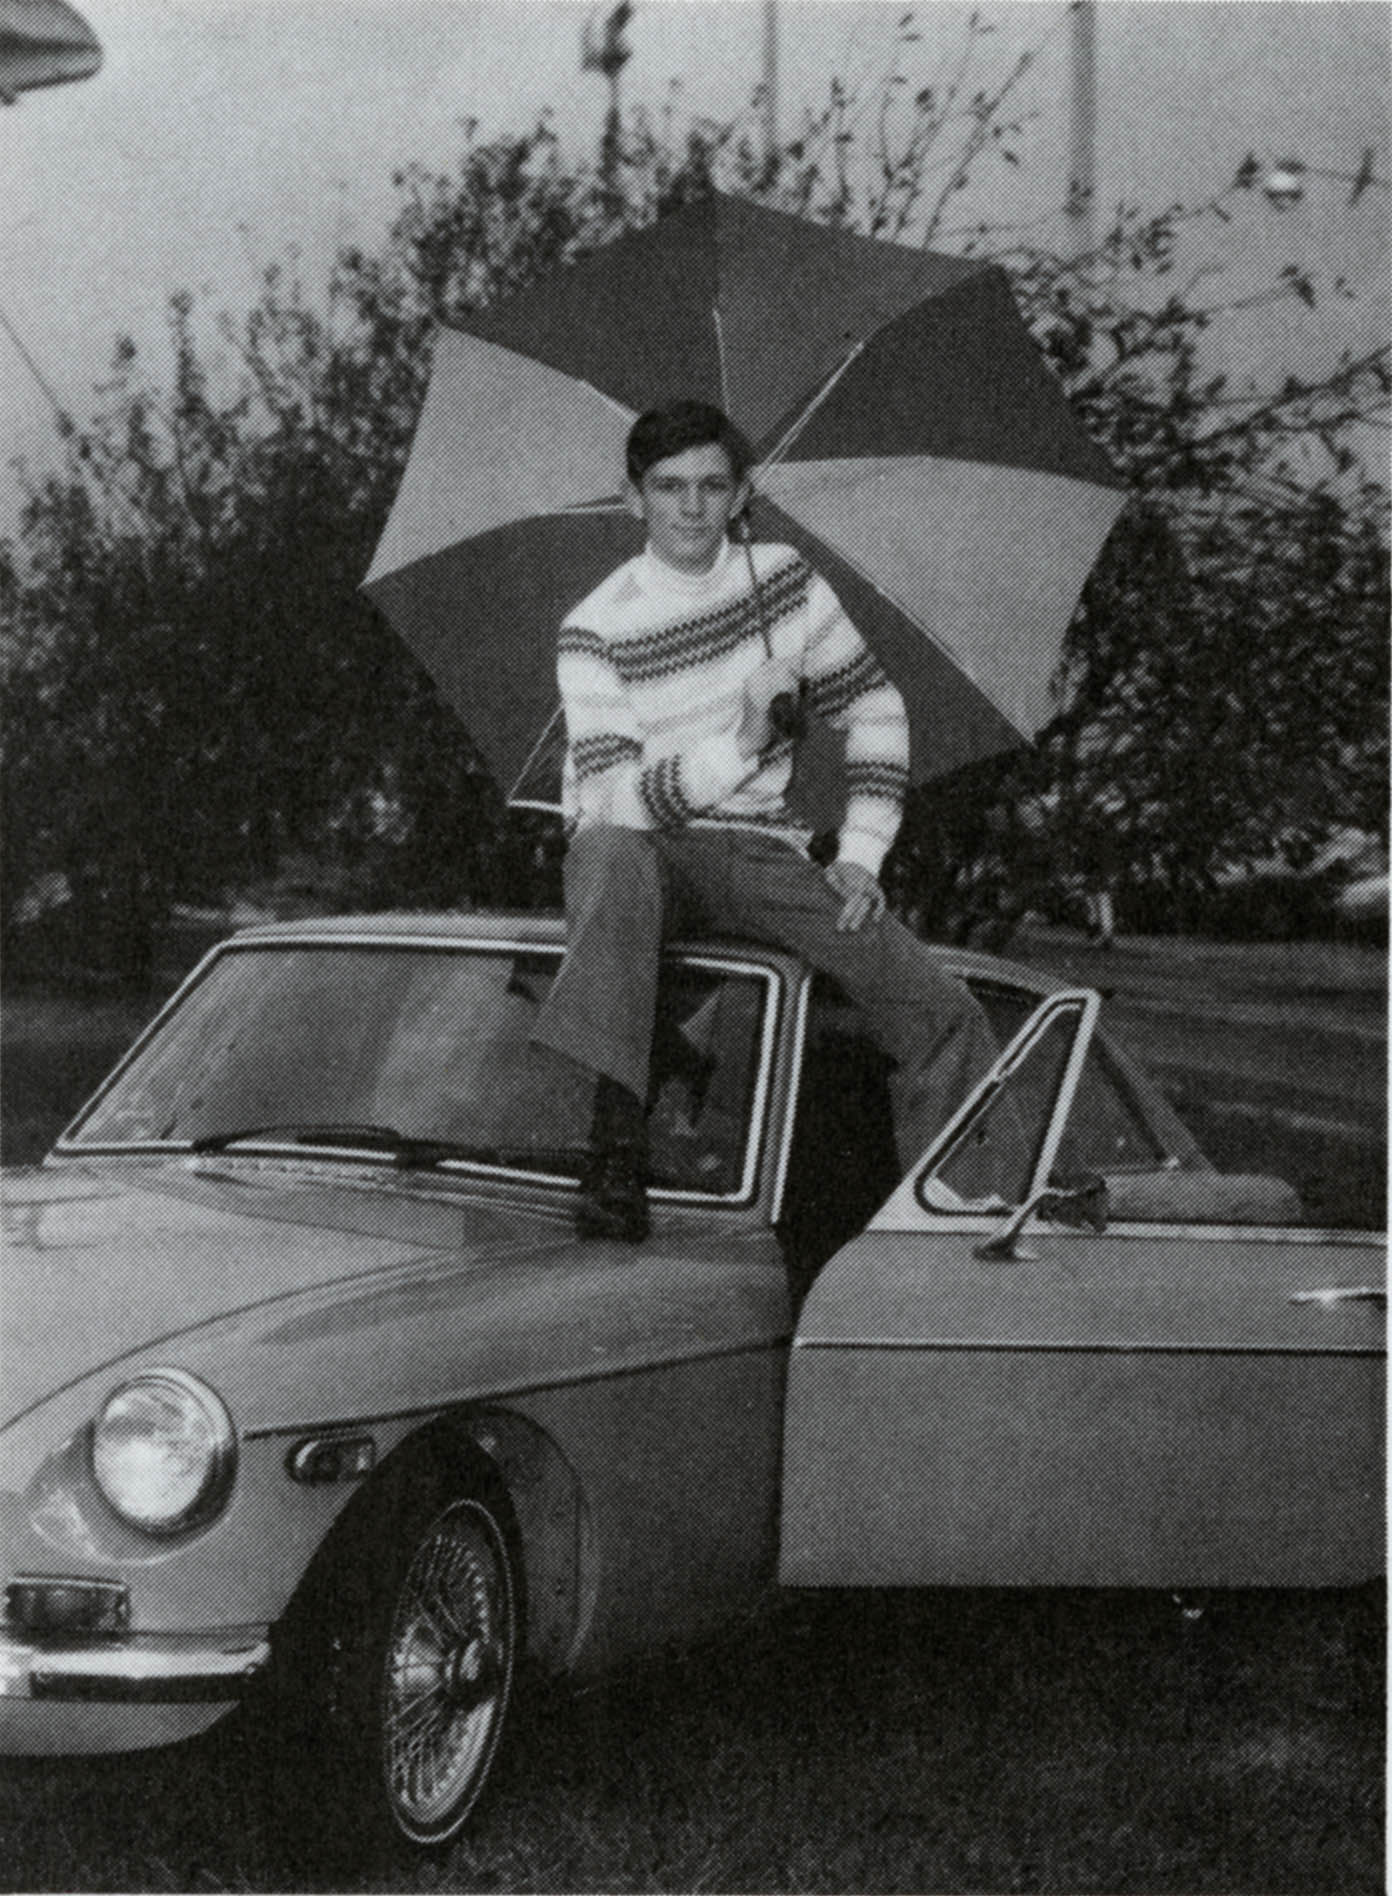 Vernon Copy Berg on the roof of a car